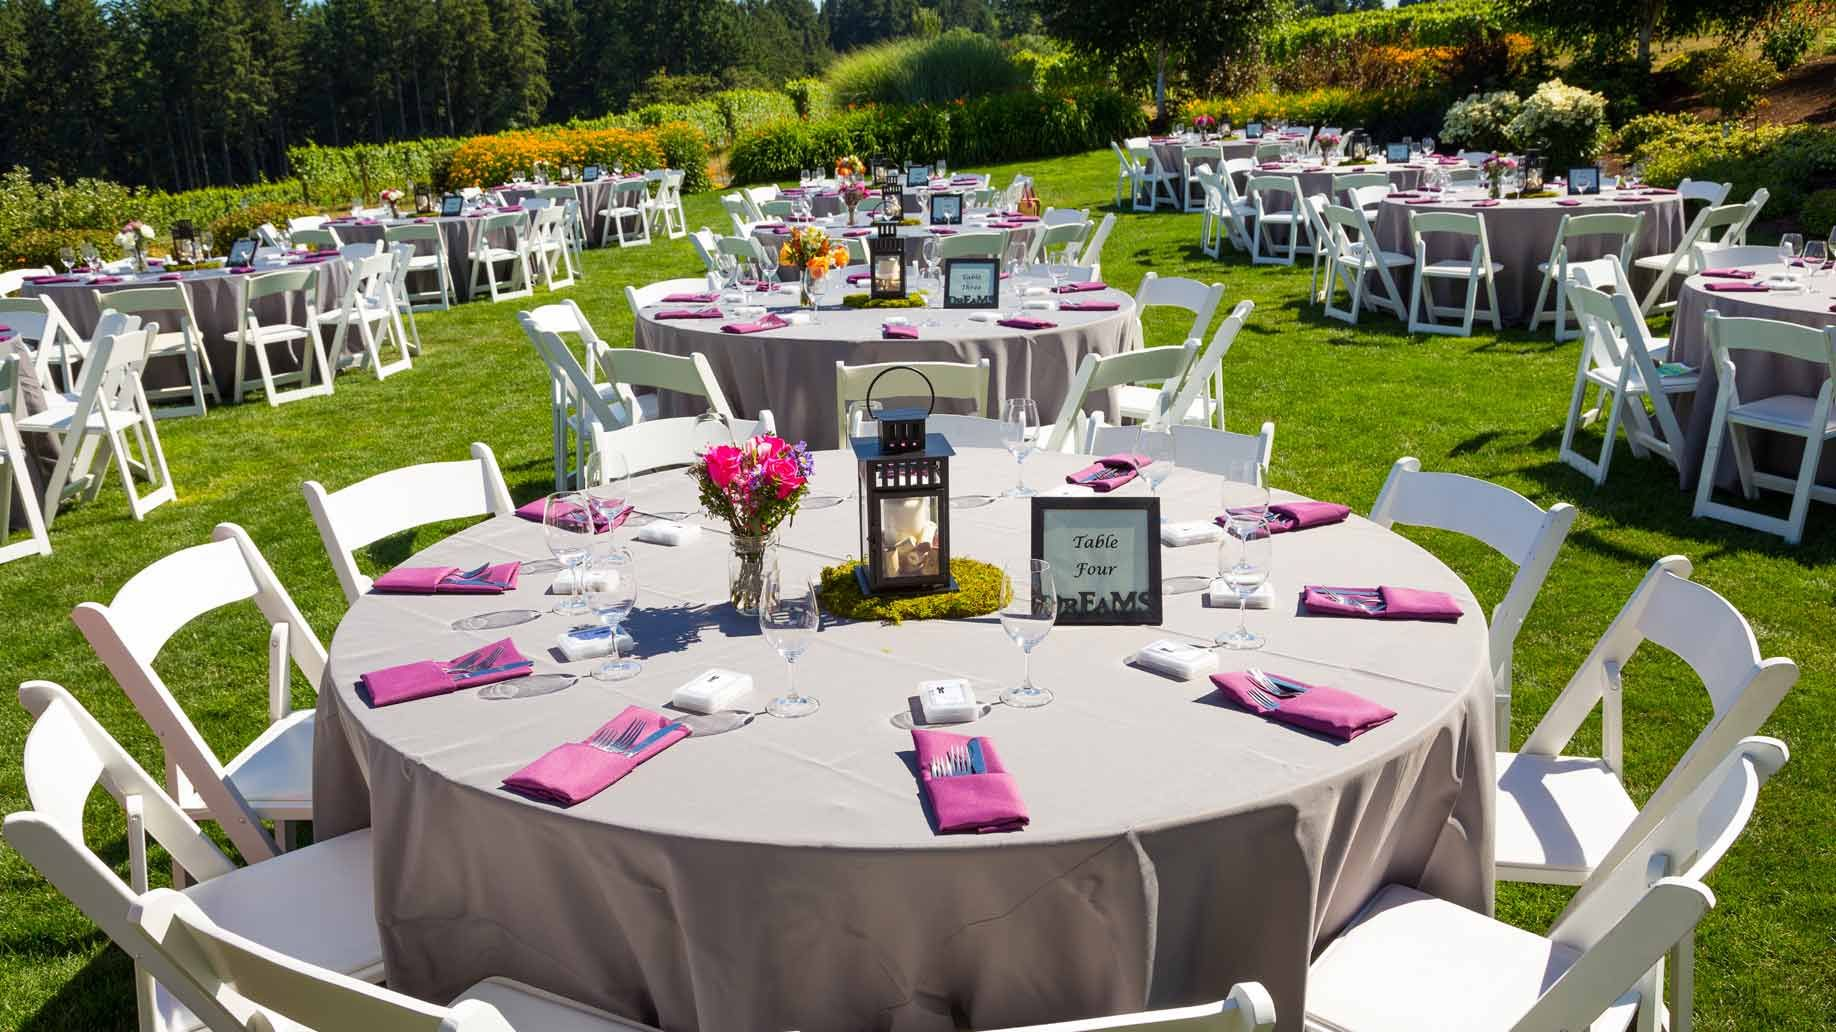 How To Throw A Wedding Reception For $1000